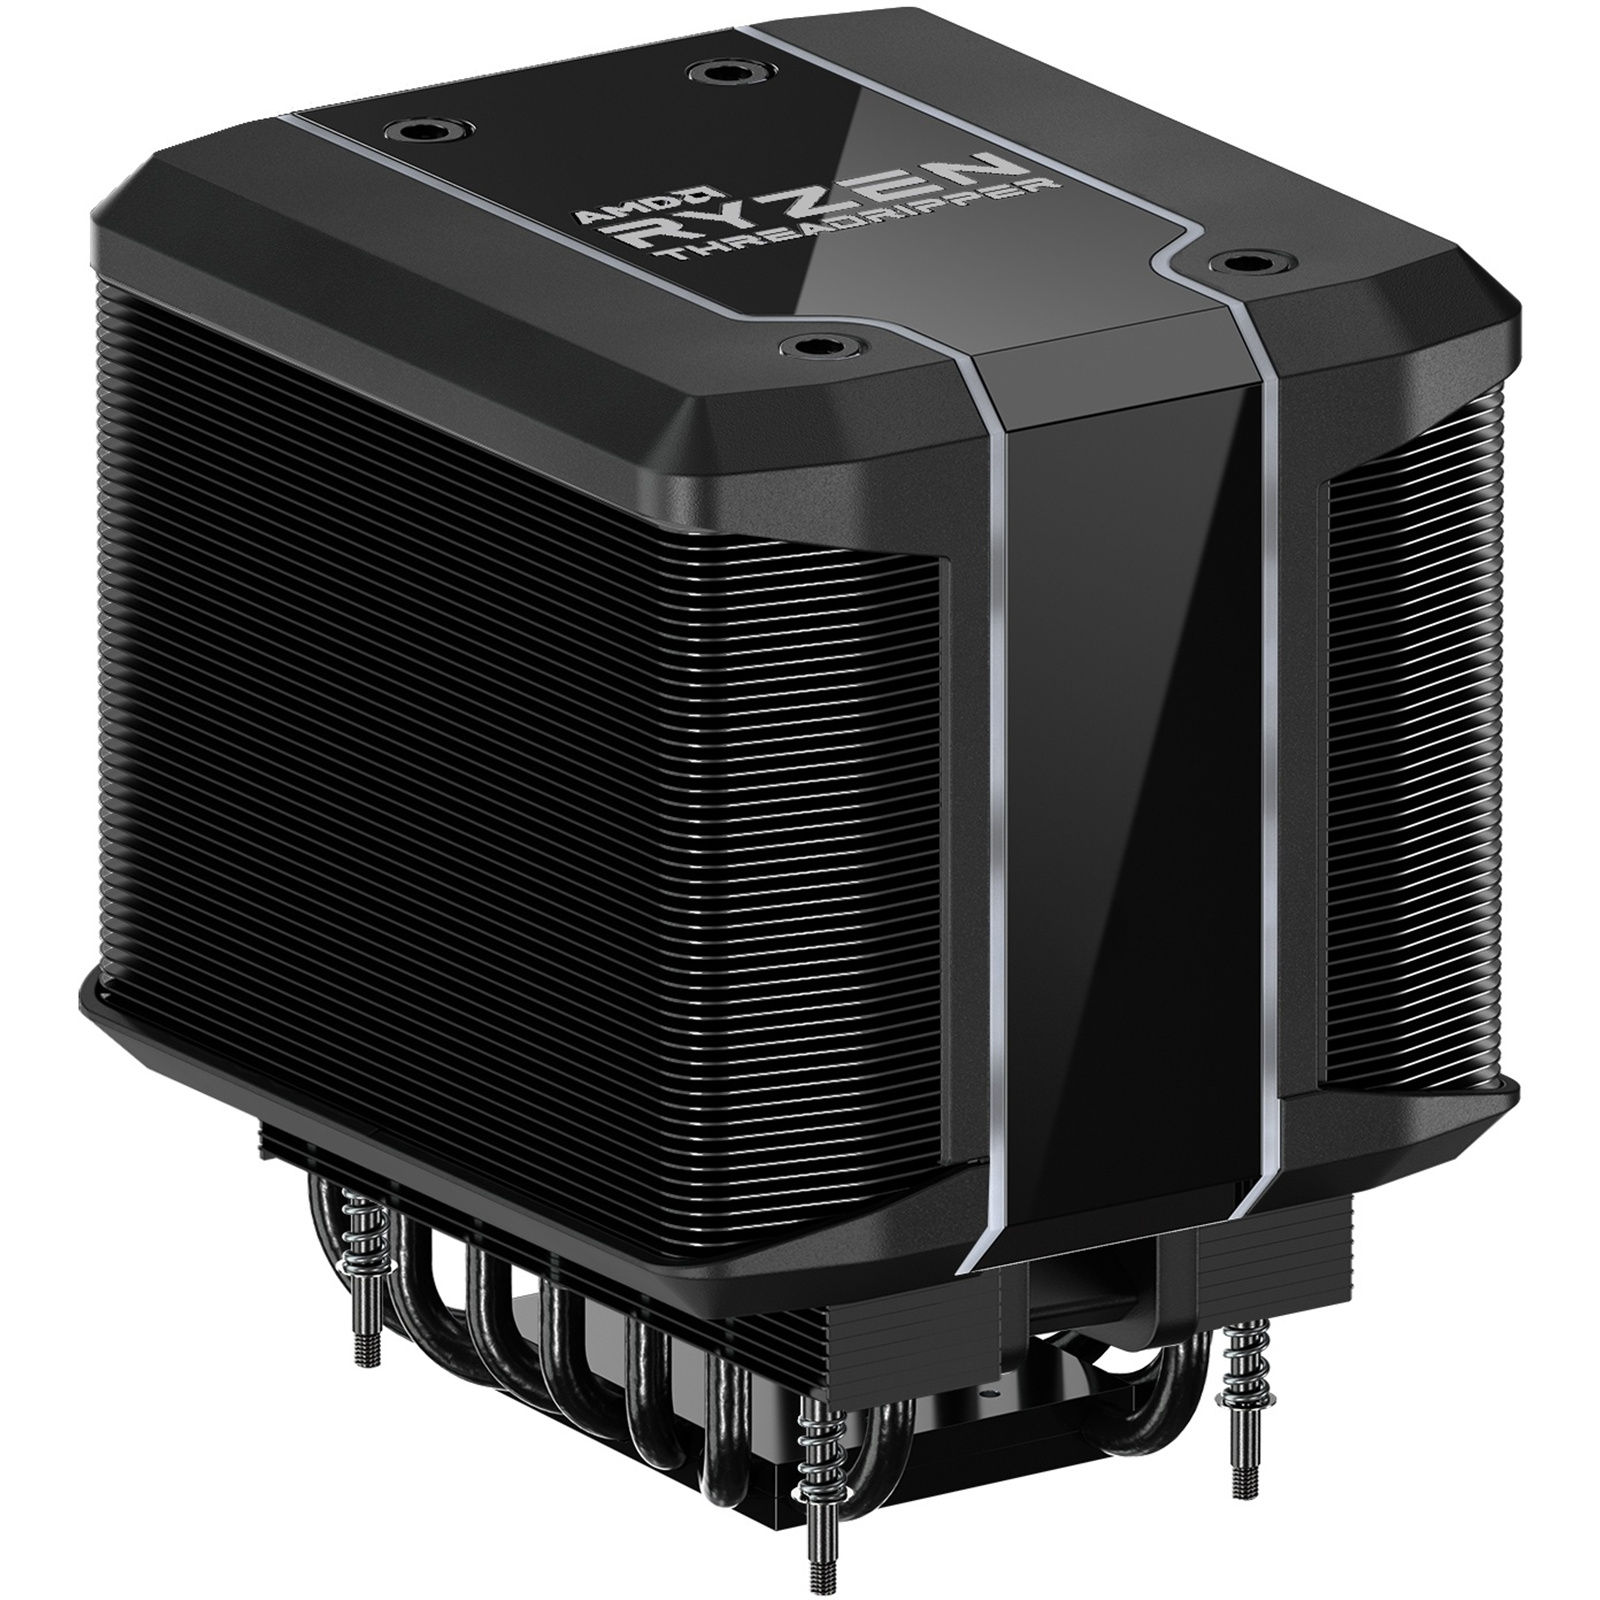 Buy the Cooler Master Wraith Ripper ARGB CPU Cooler With